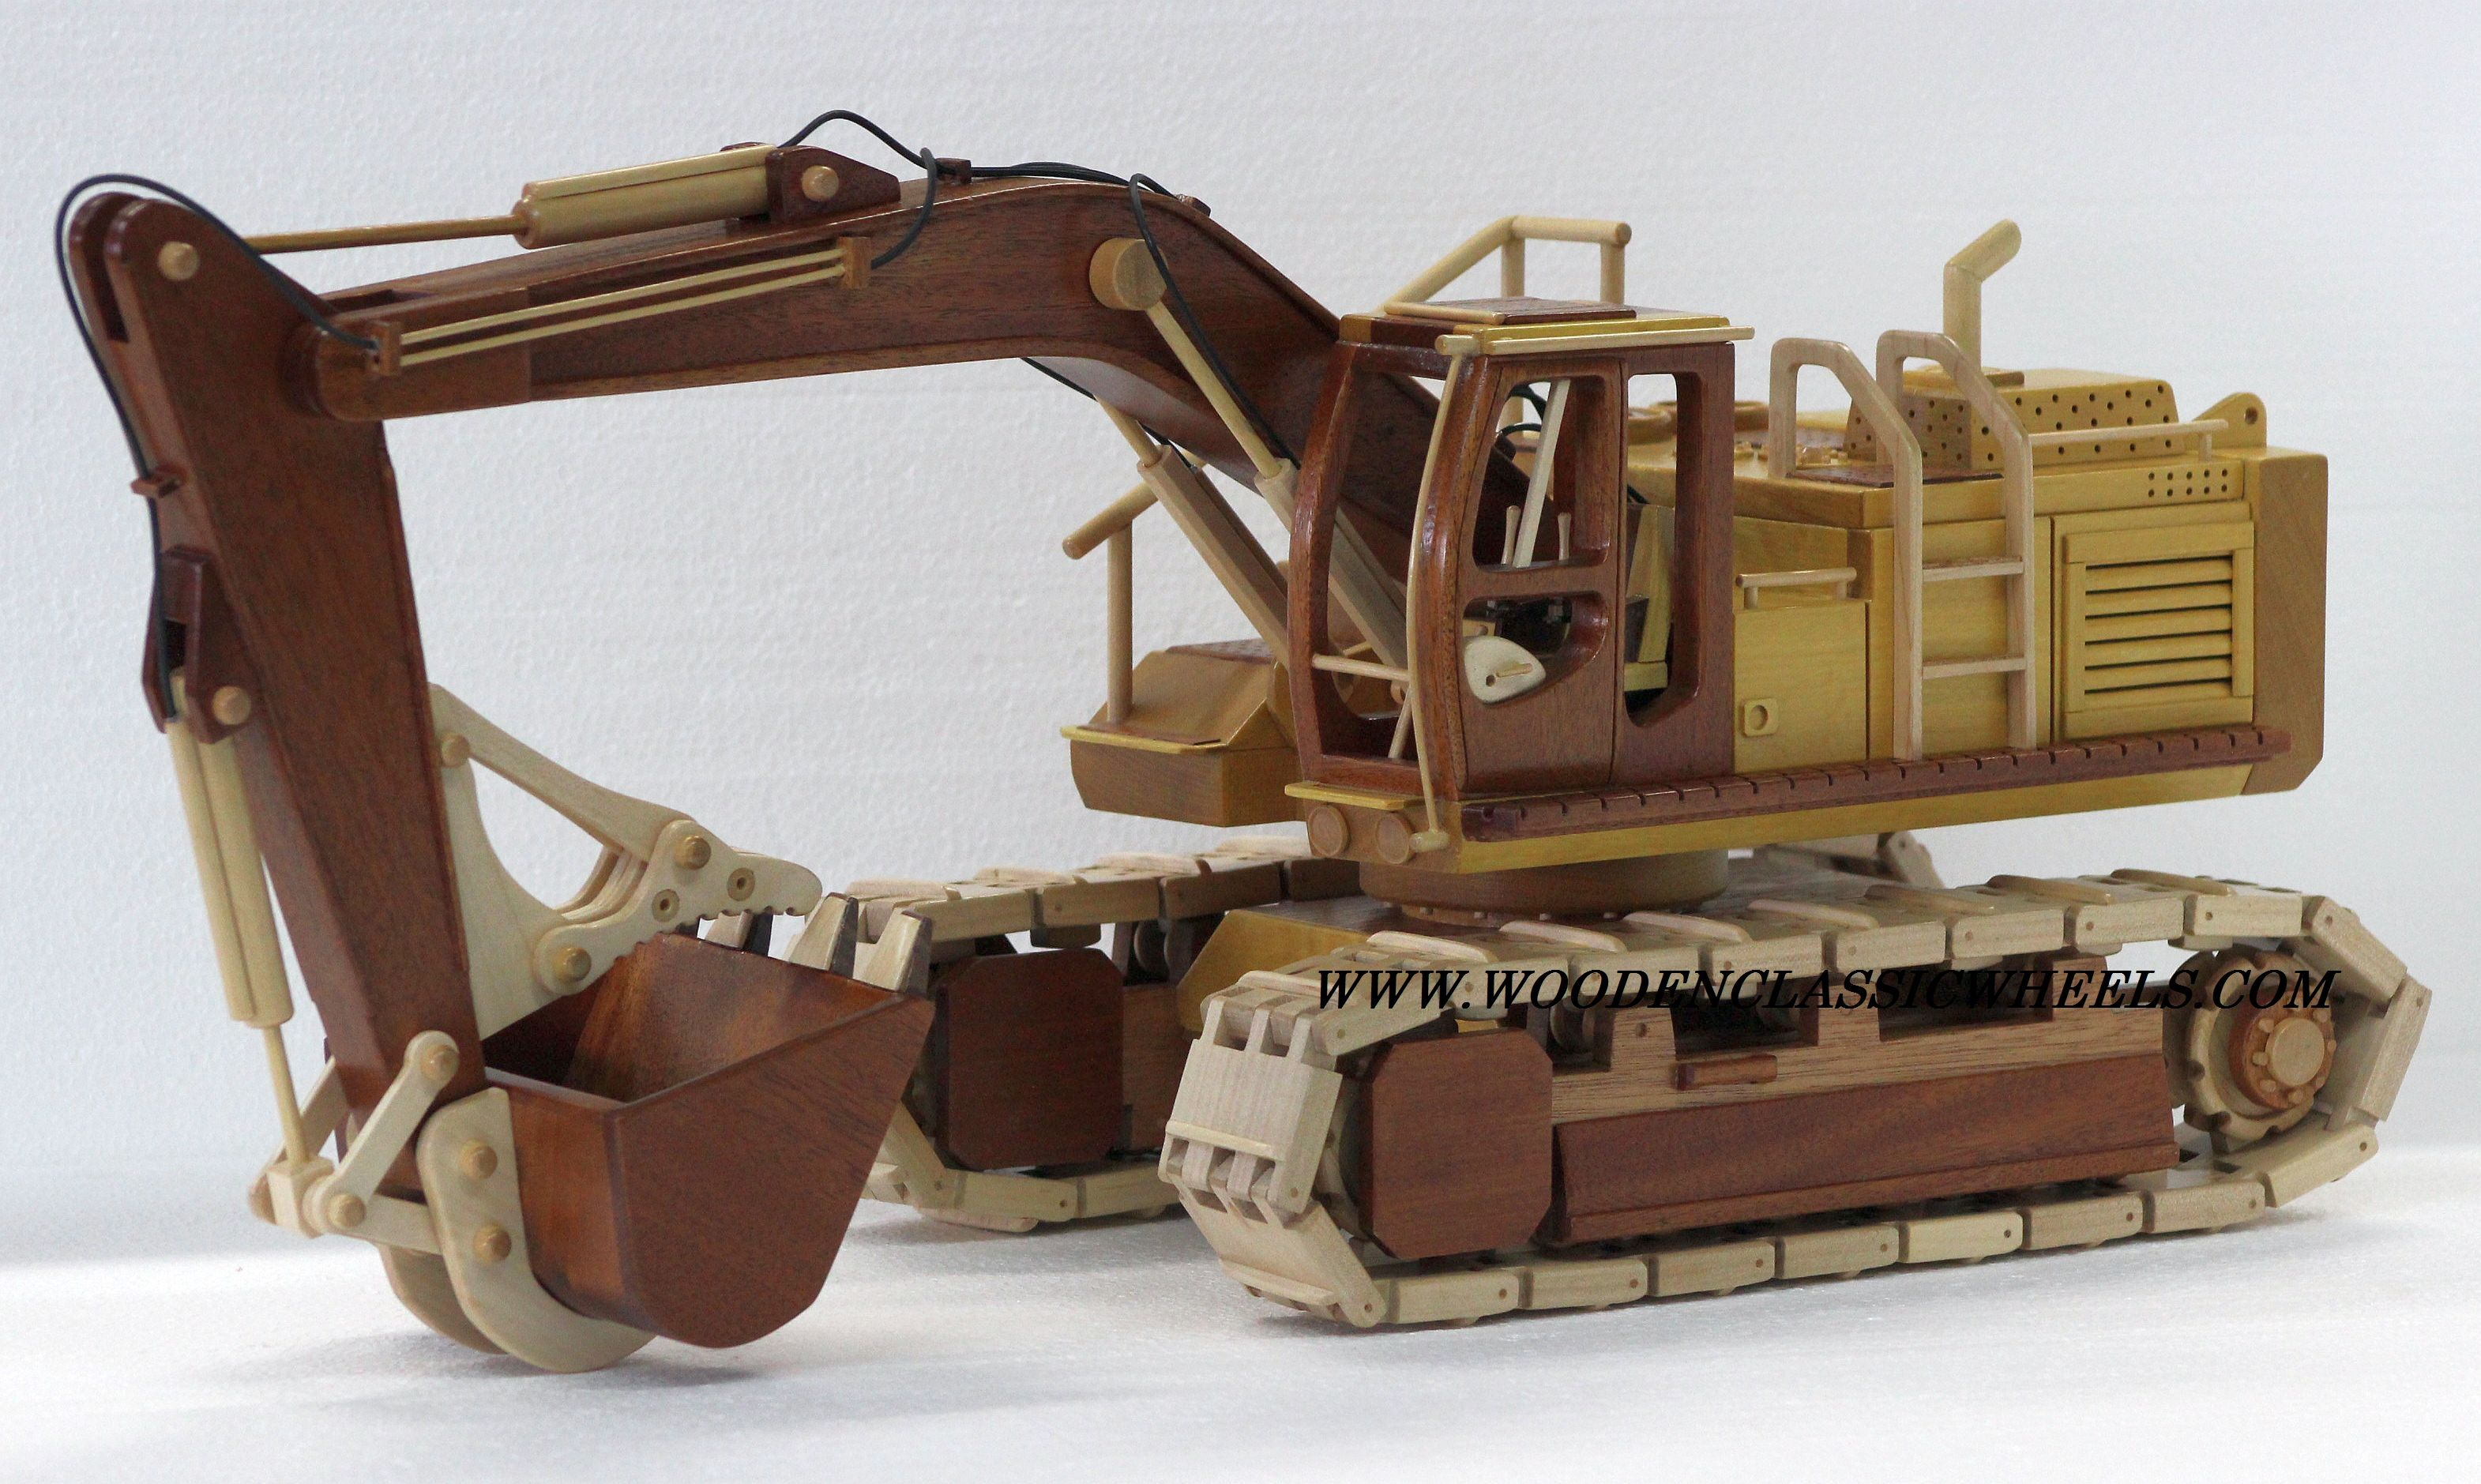 Custom Handmade Wooden Model Replicas Www